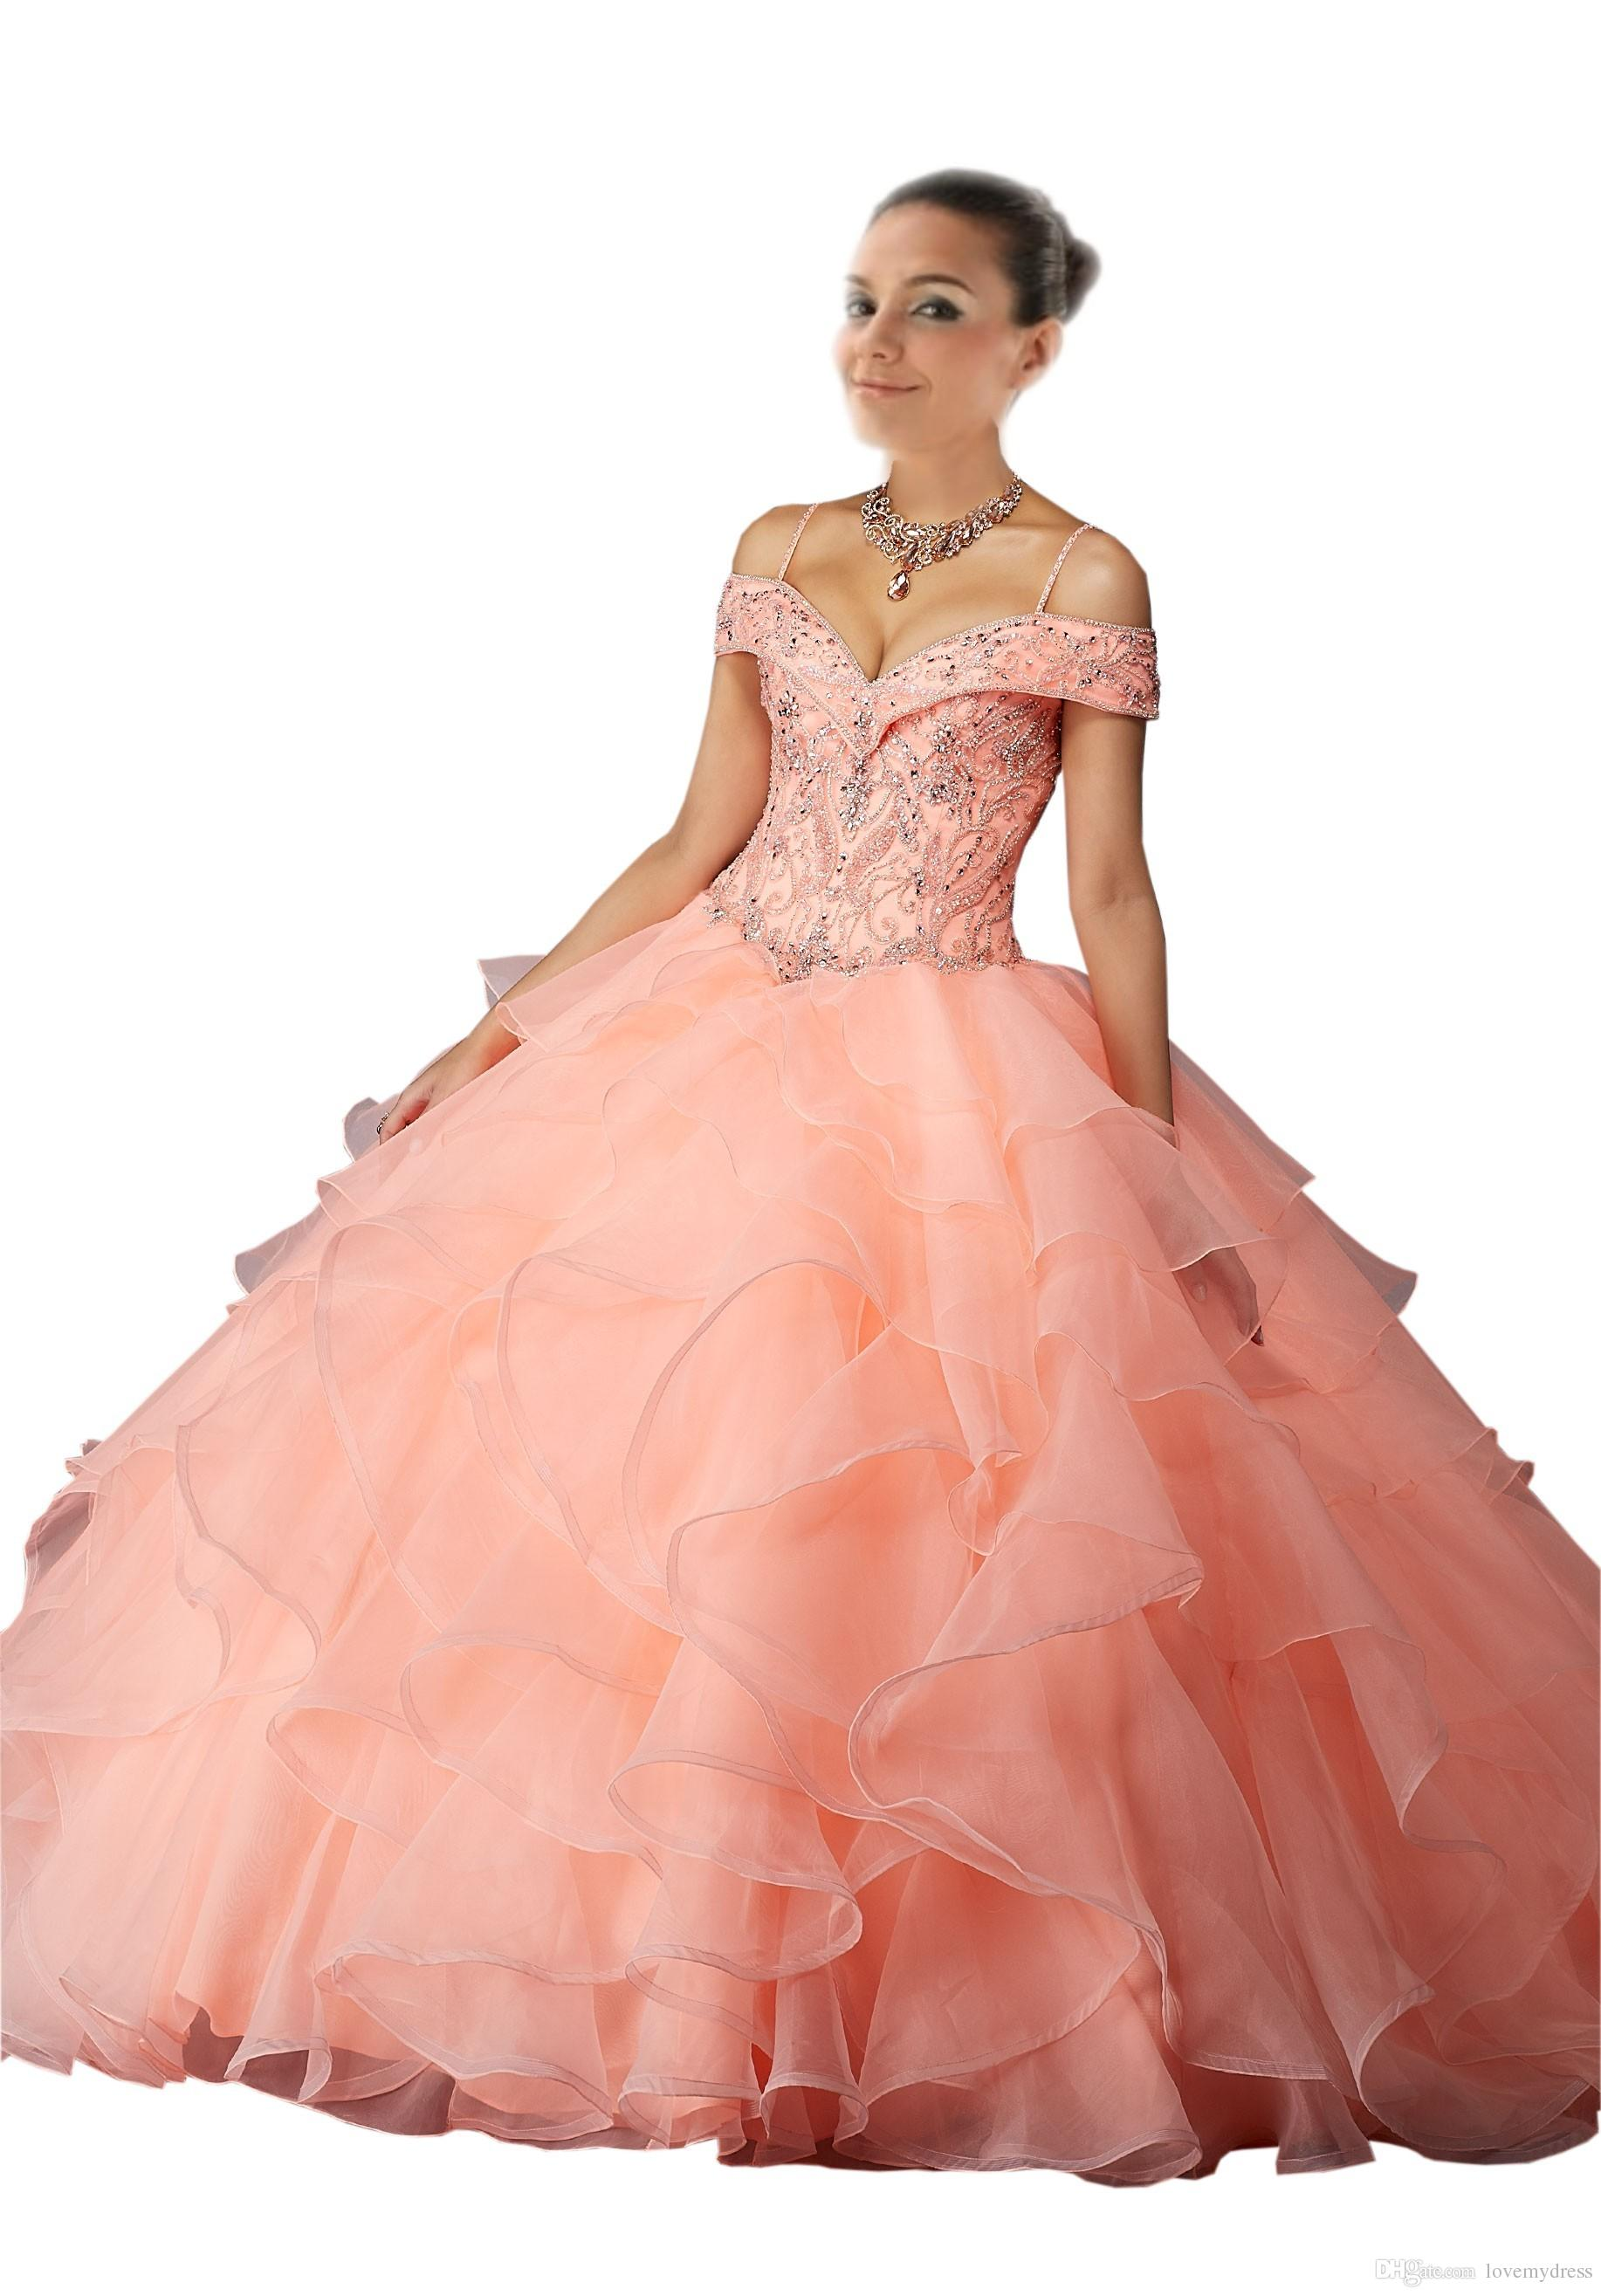 f04480f3368d5 Coral Cold Shoulder Prom Quinceanera Dresses Organza Crystal Beaded Sweet  16 Girls Ball Gown Ruffles Long Cheap Beads Vestidos 15 Anos Dress Online  Dress ...